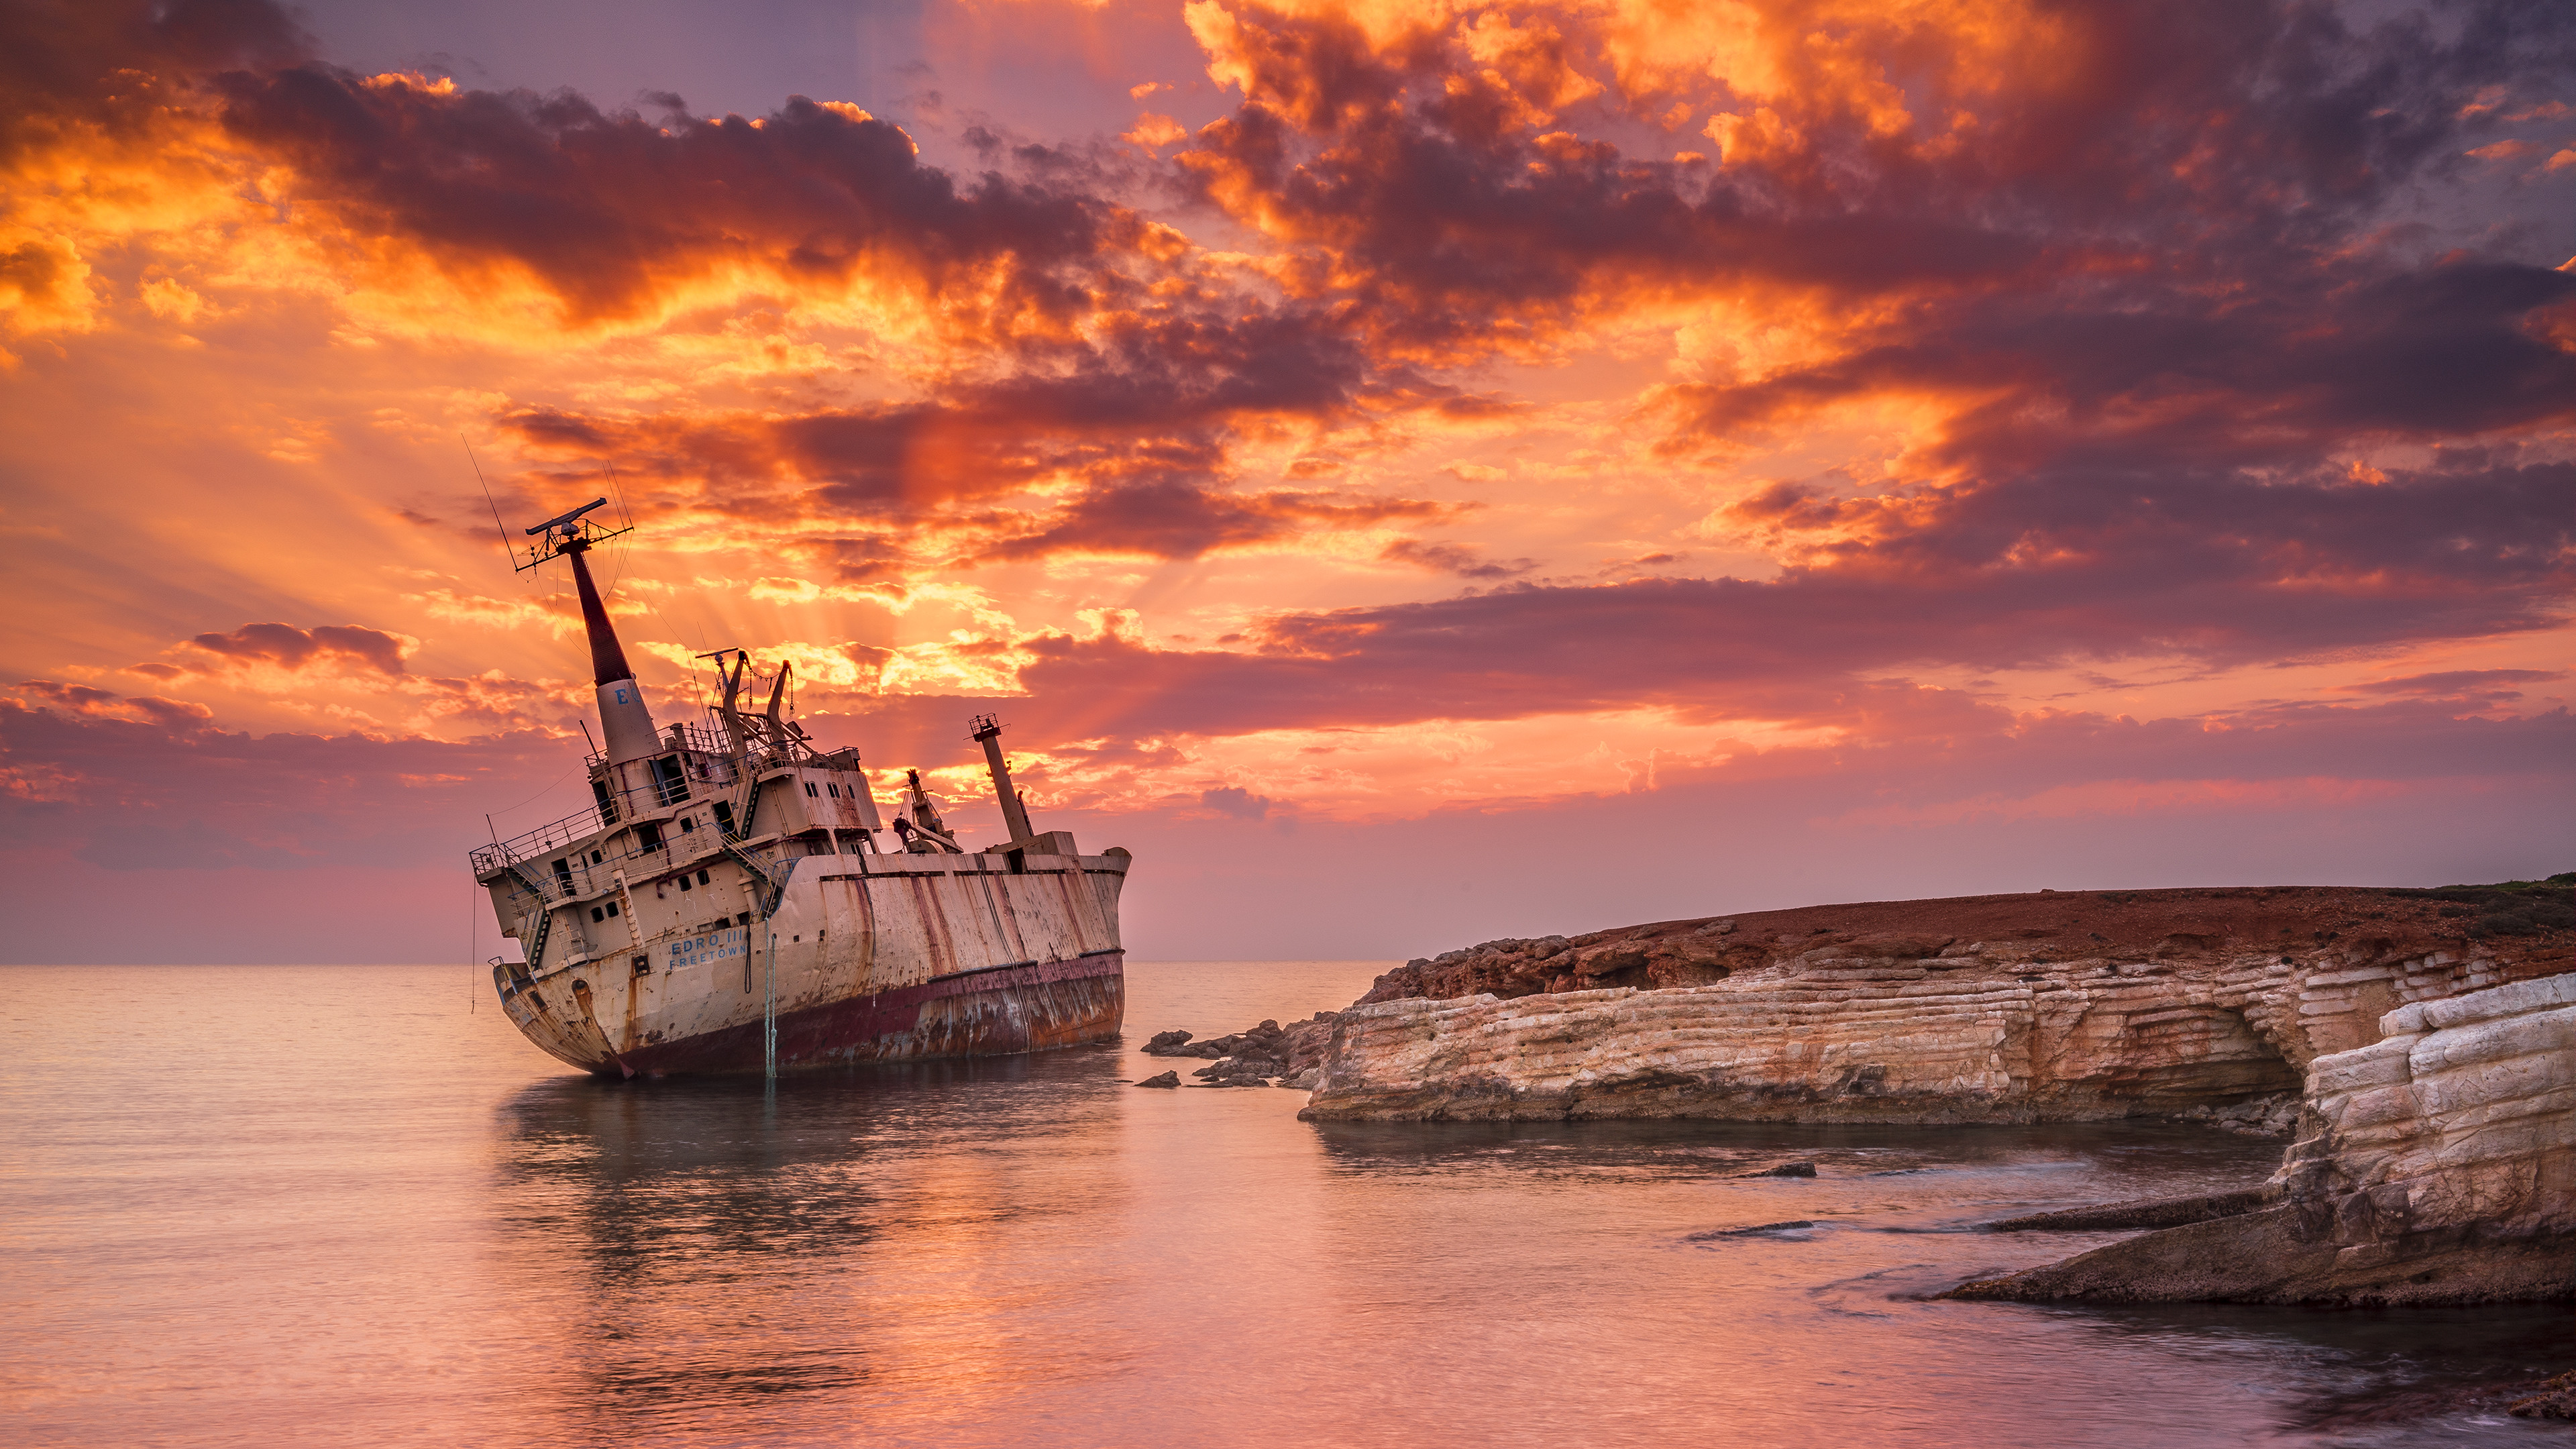 Wrecked ship 4k hd others 4k wallpapers images - Hd 4k resolution wallpaper ...